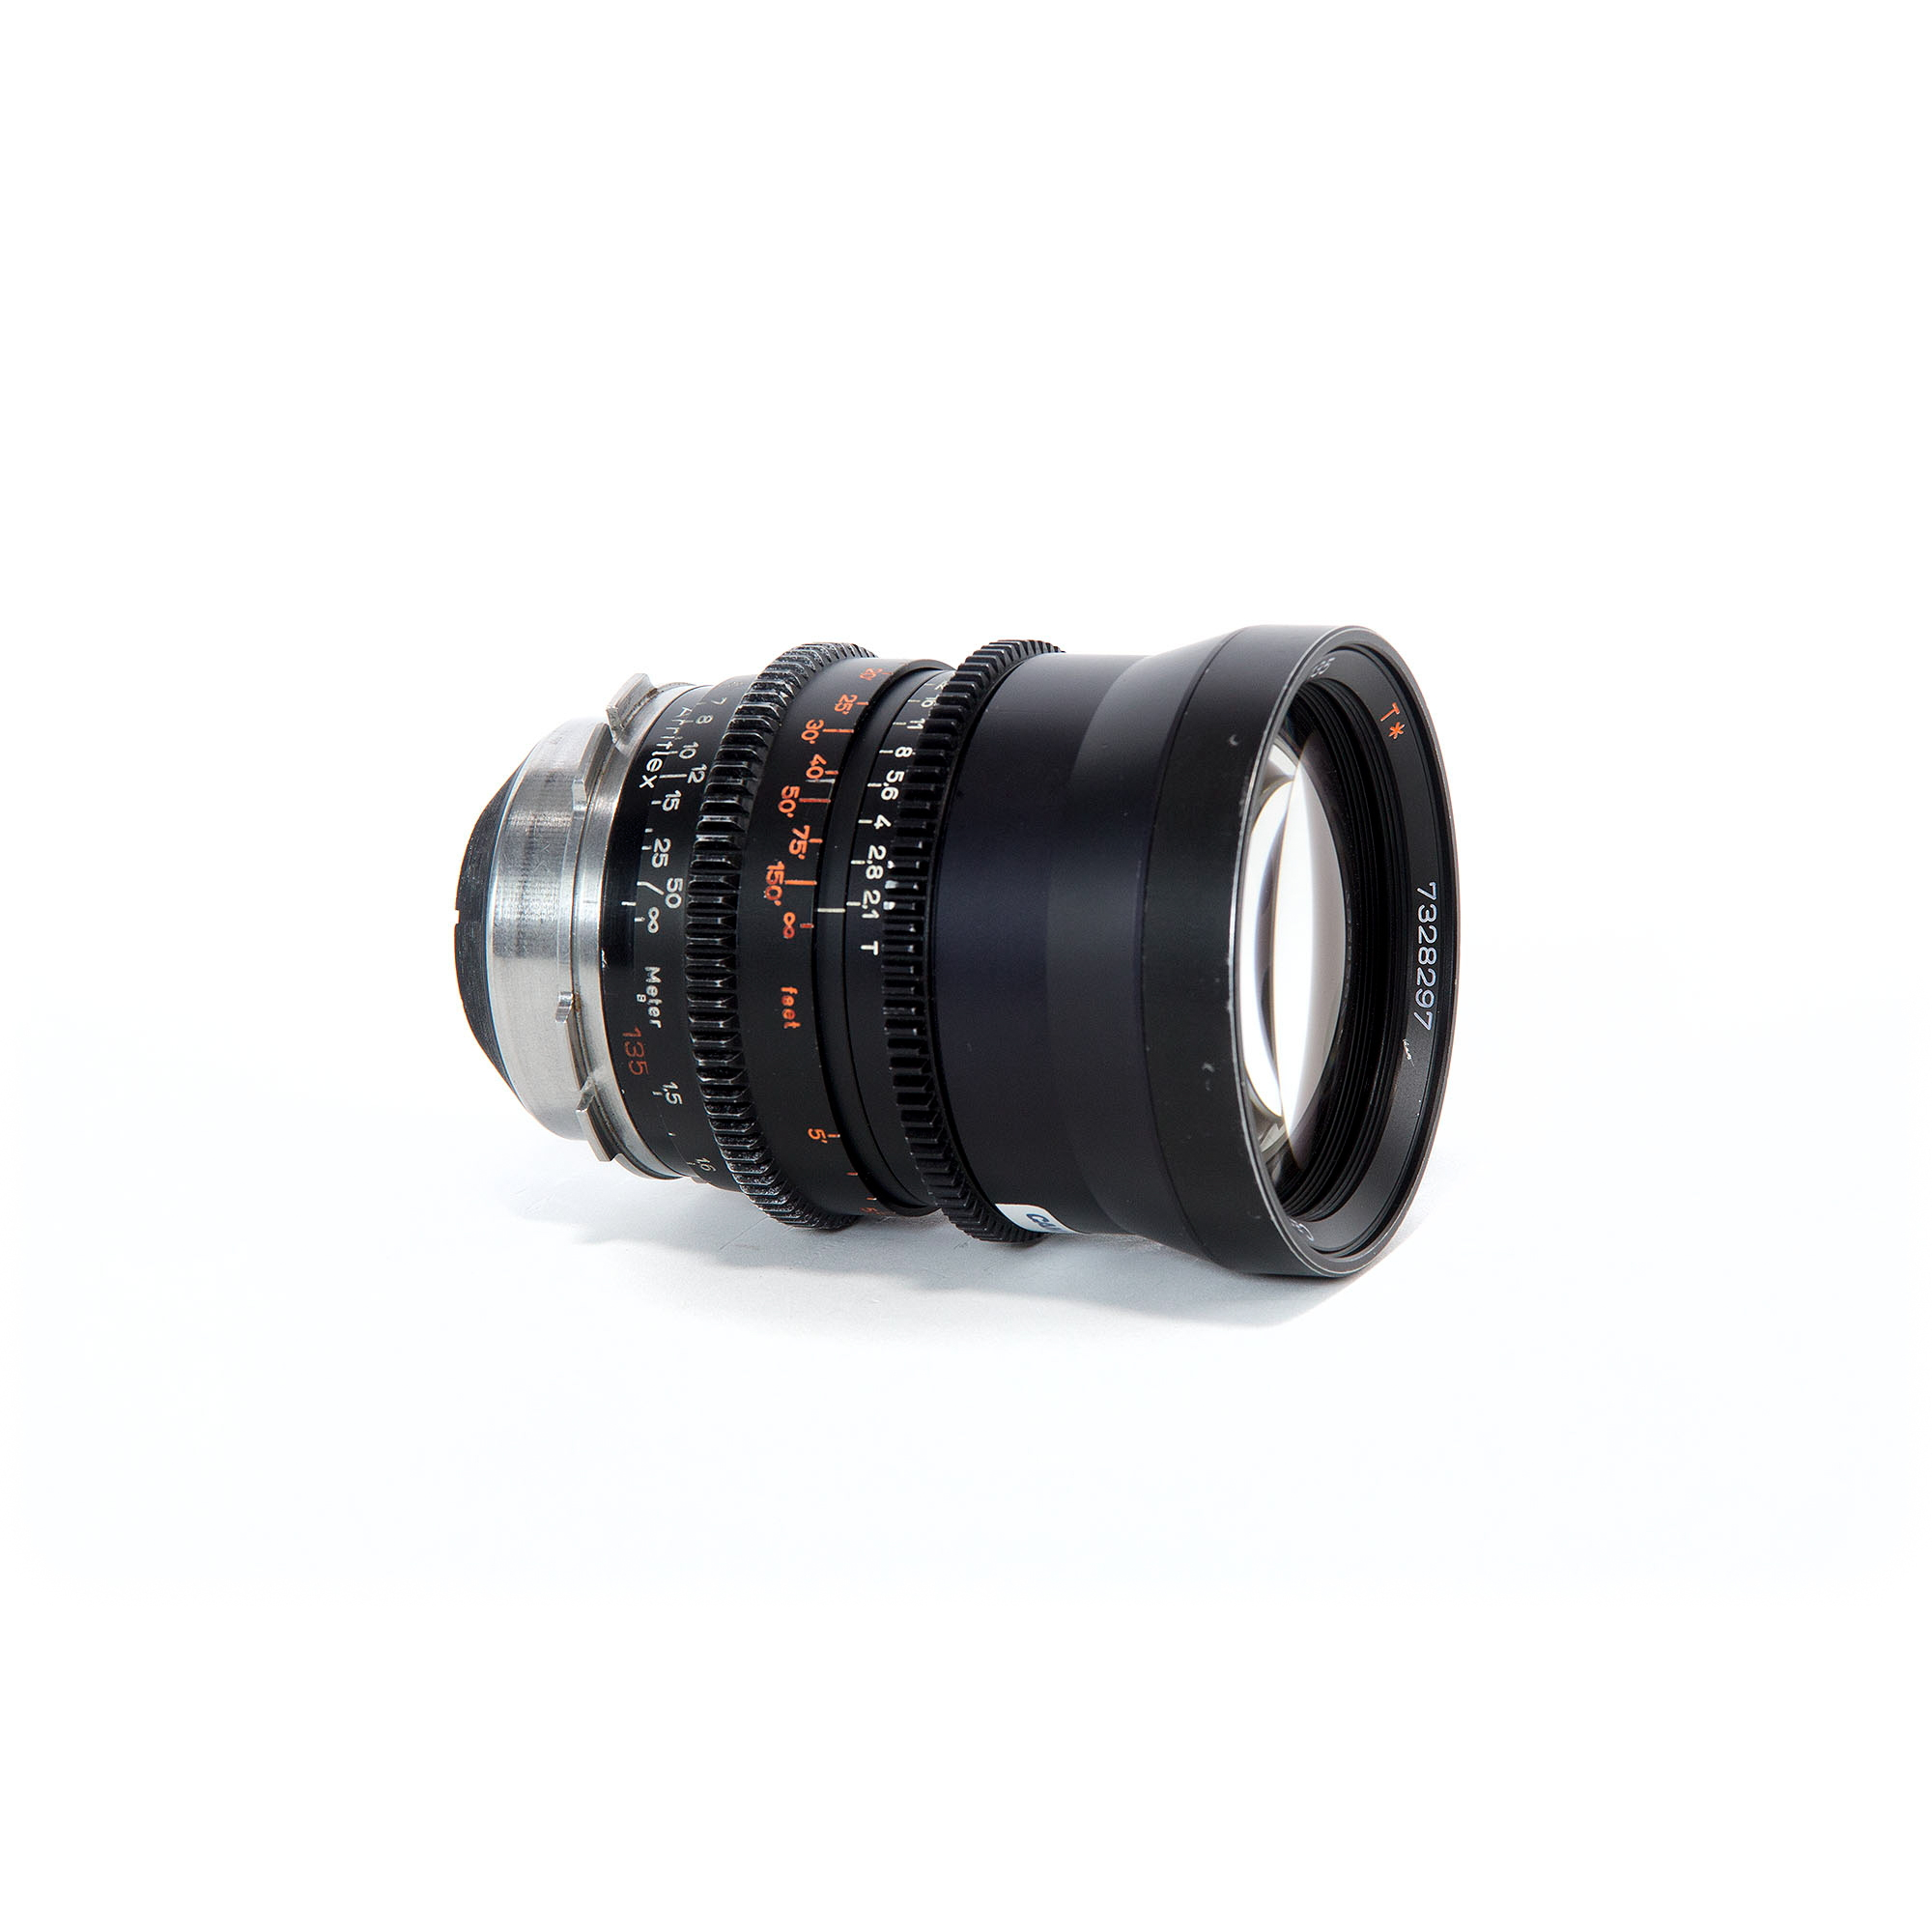 Zeiss 135mm T2.1 1